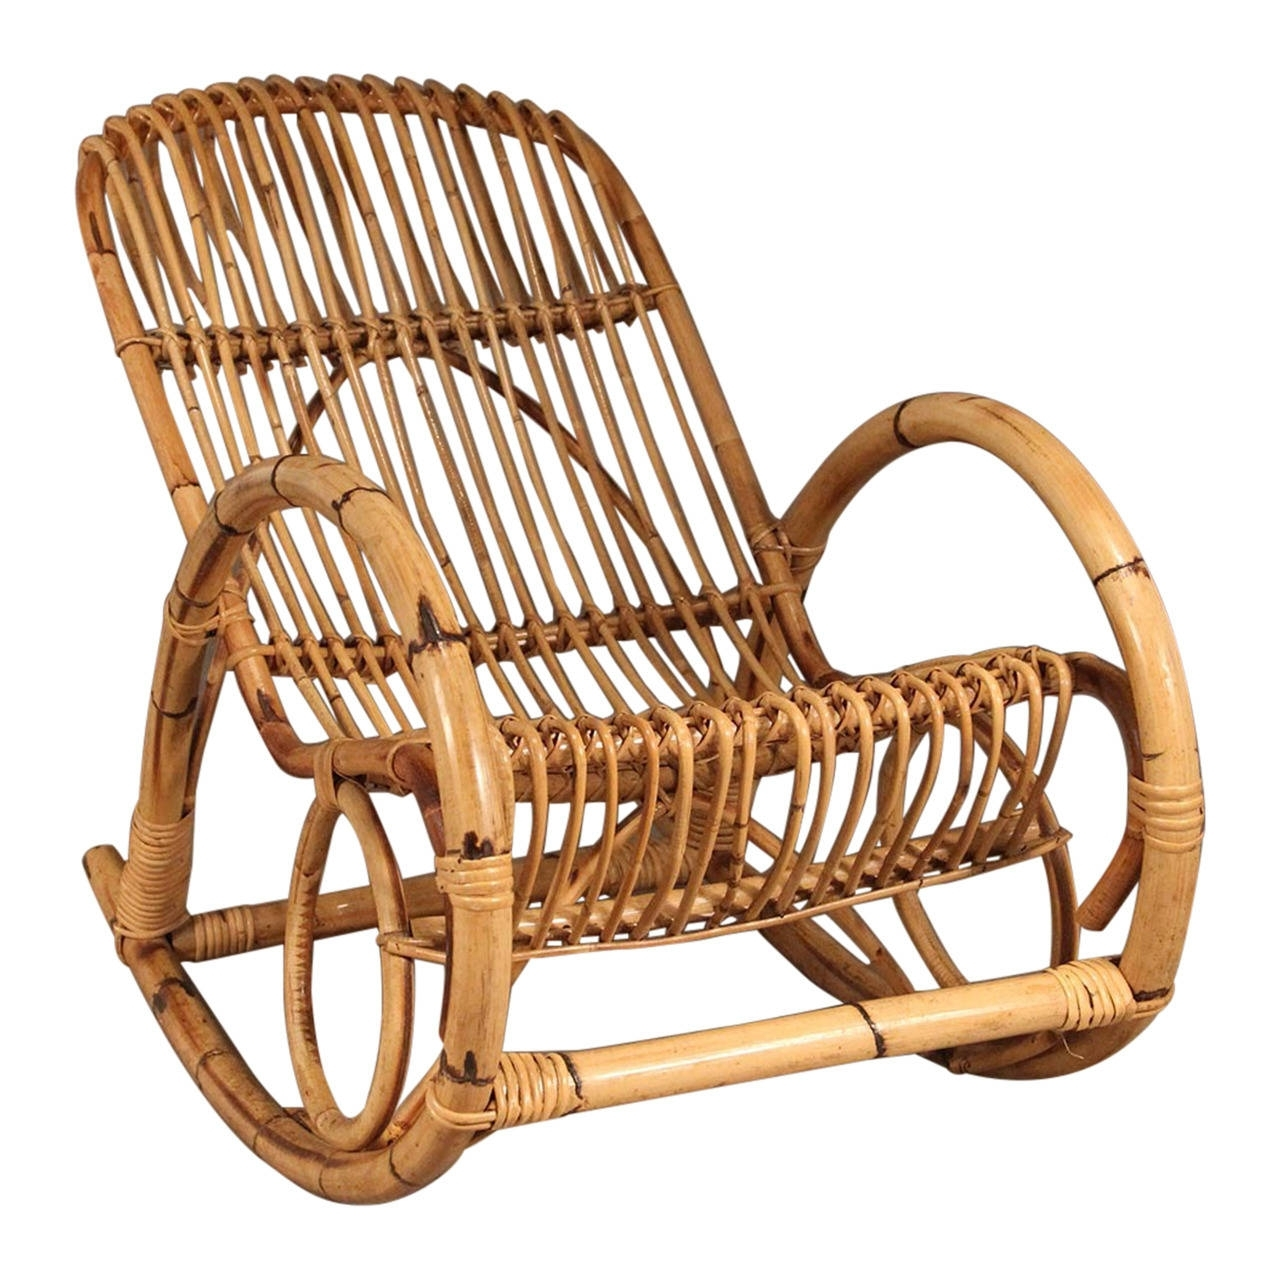 Franco Albini Style Mid Century Rattan Rocking Chair For Sale At 1Stdibs Inside Latest Wicker Rocking Chair With Magazine Holder (View 8 of 15)